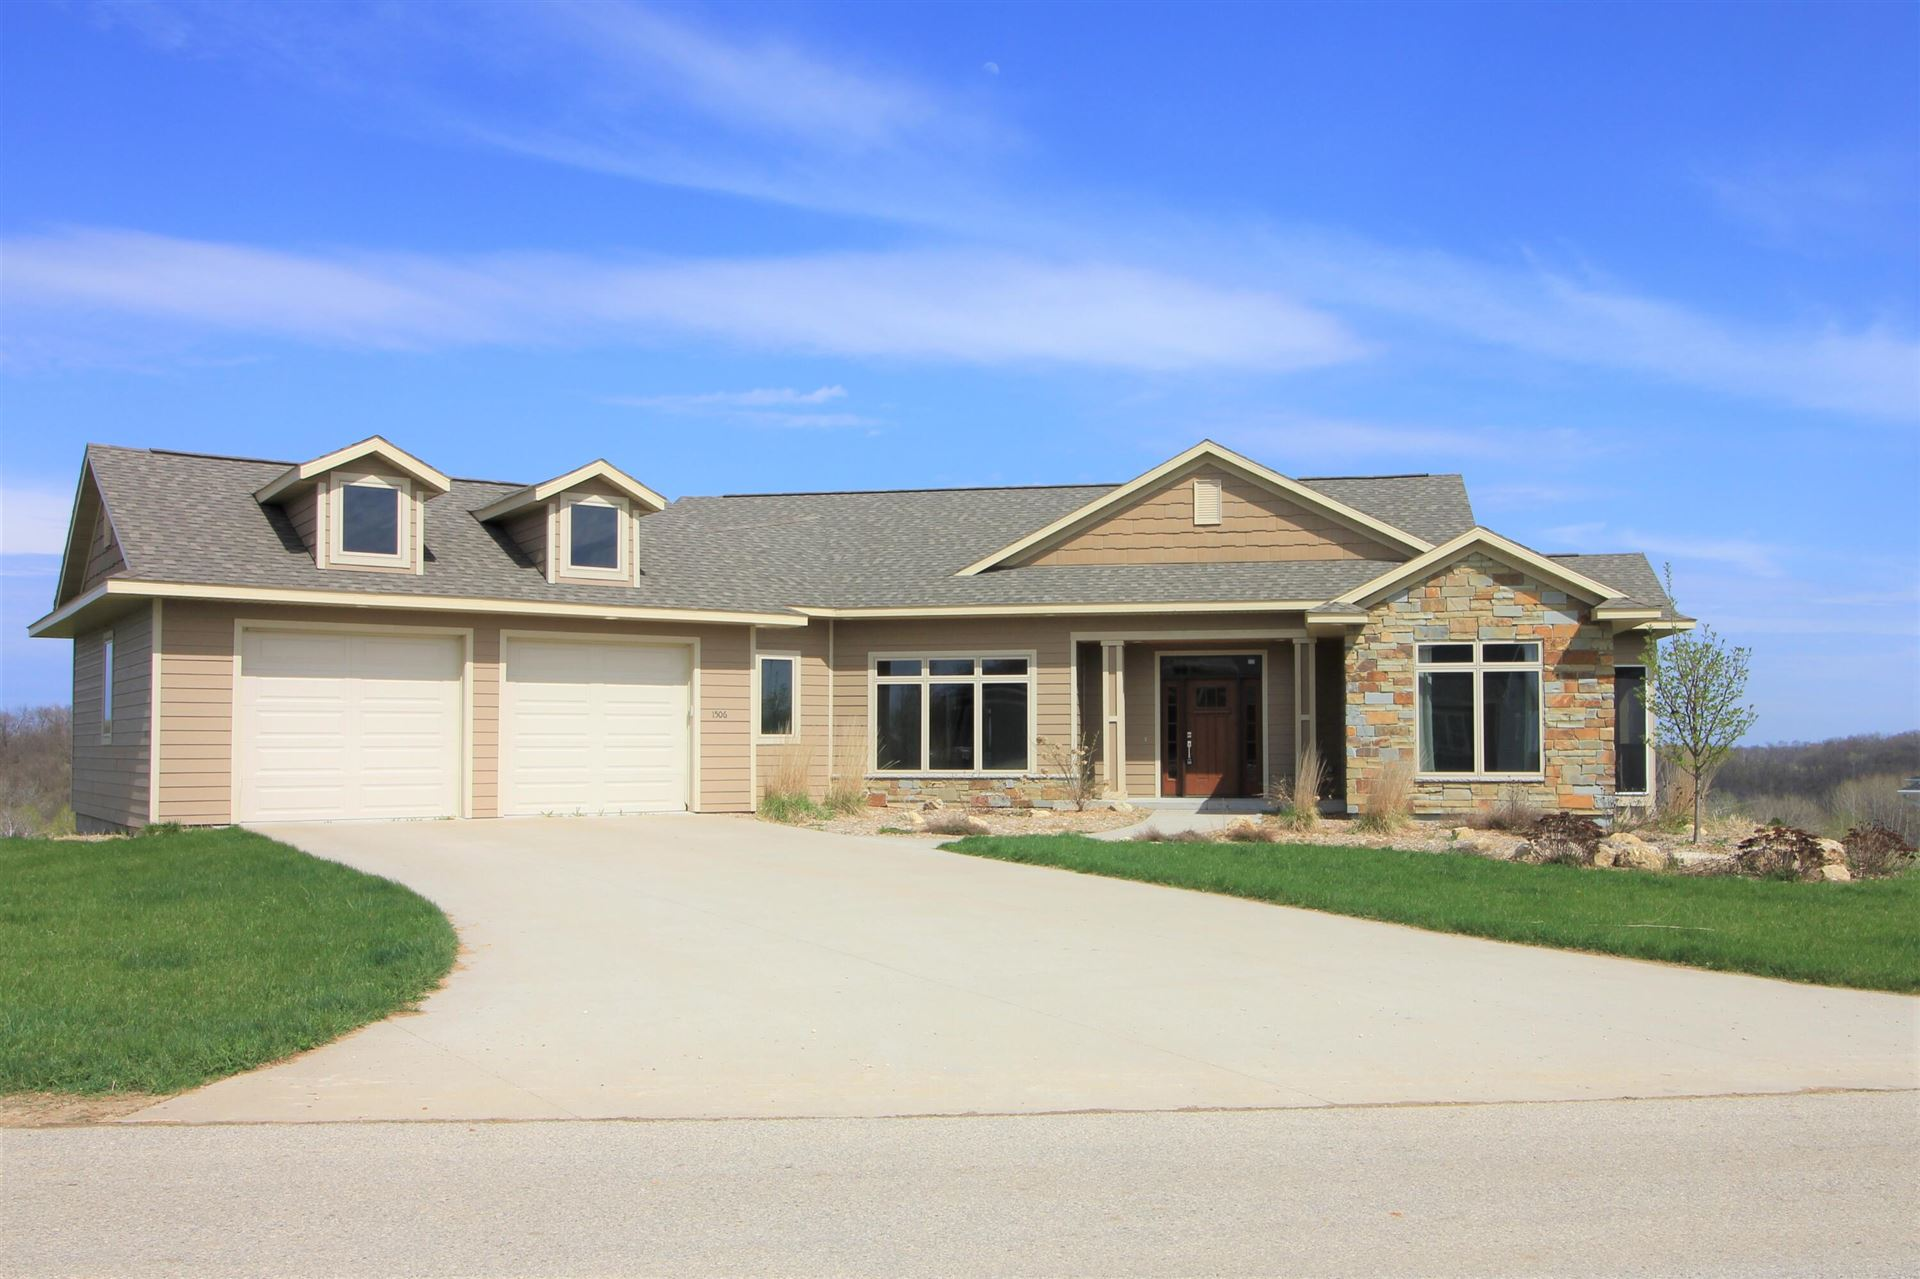 1506 Ambrosia Ct, La Crescent, MN 55947 - MLS#: 1731732